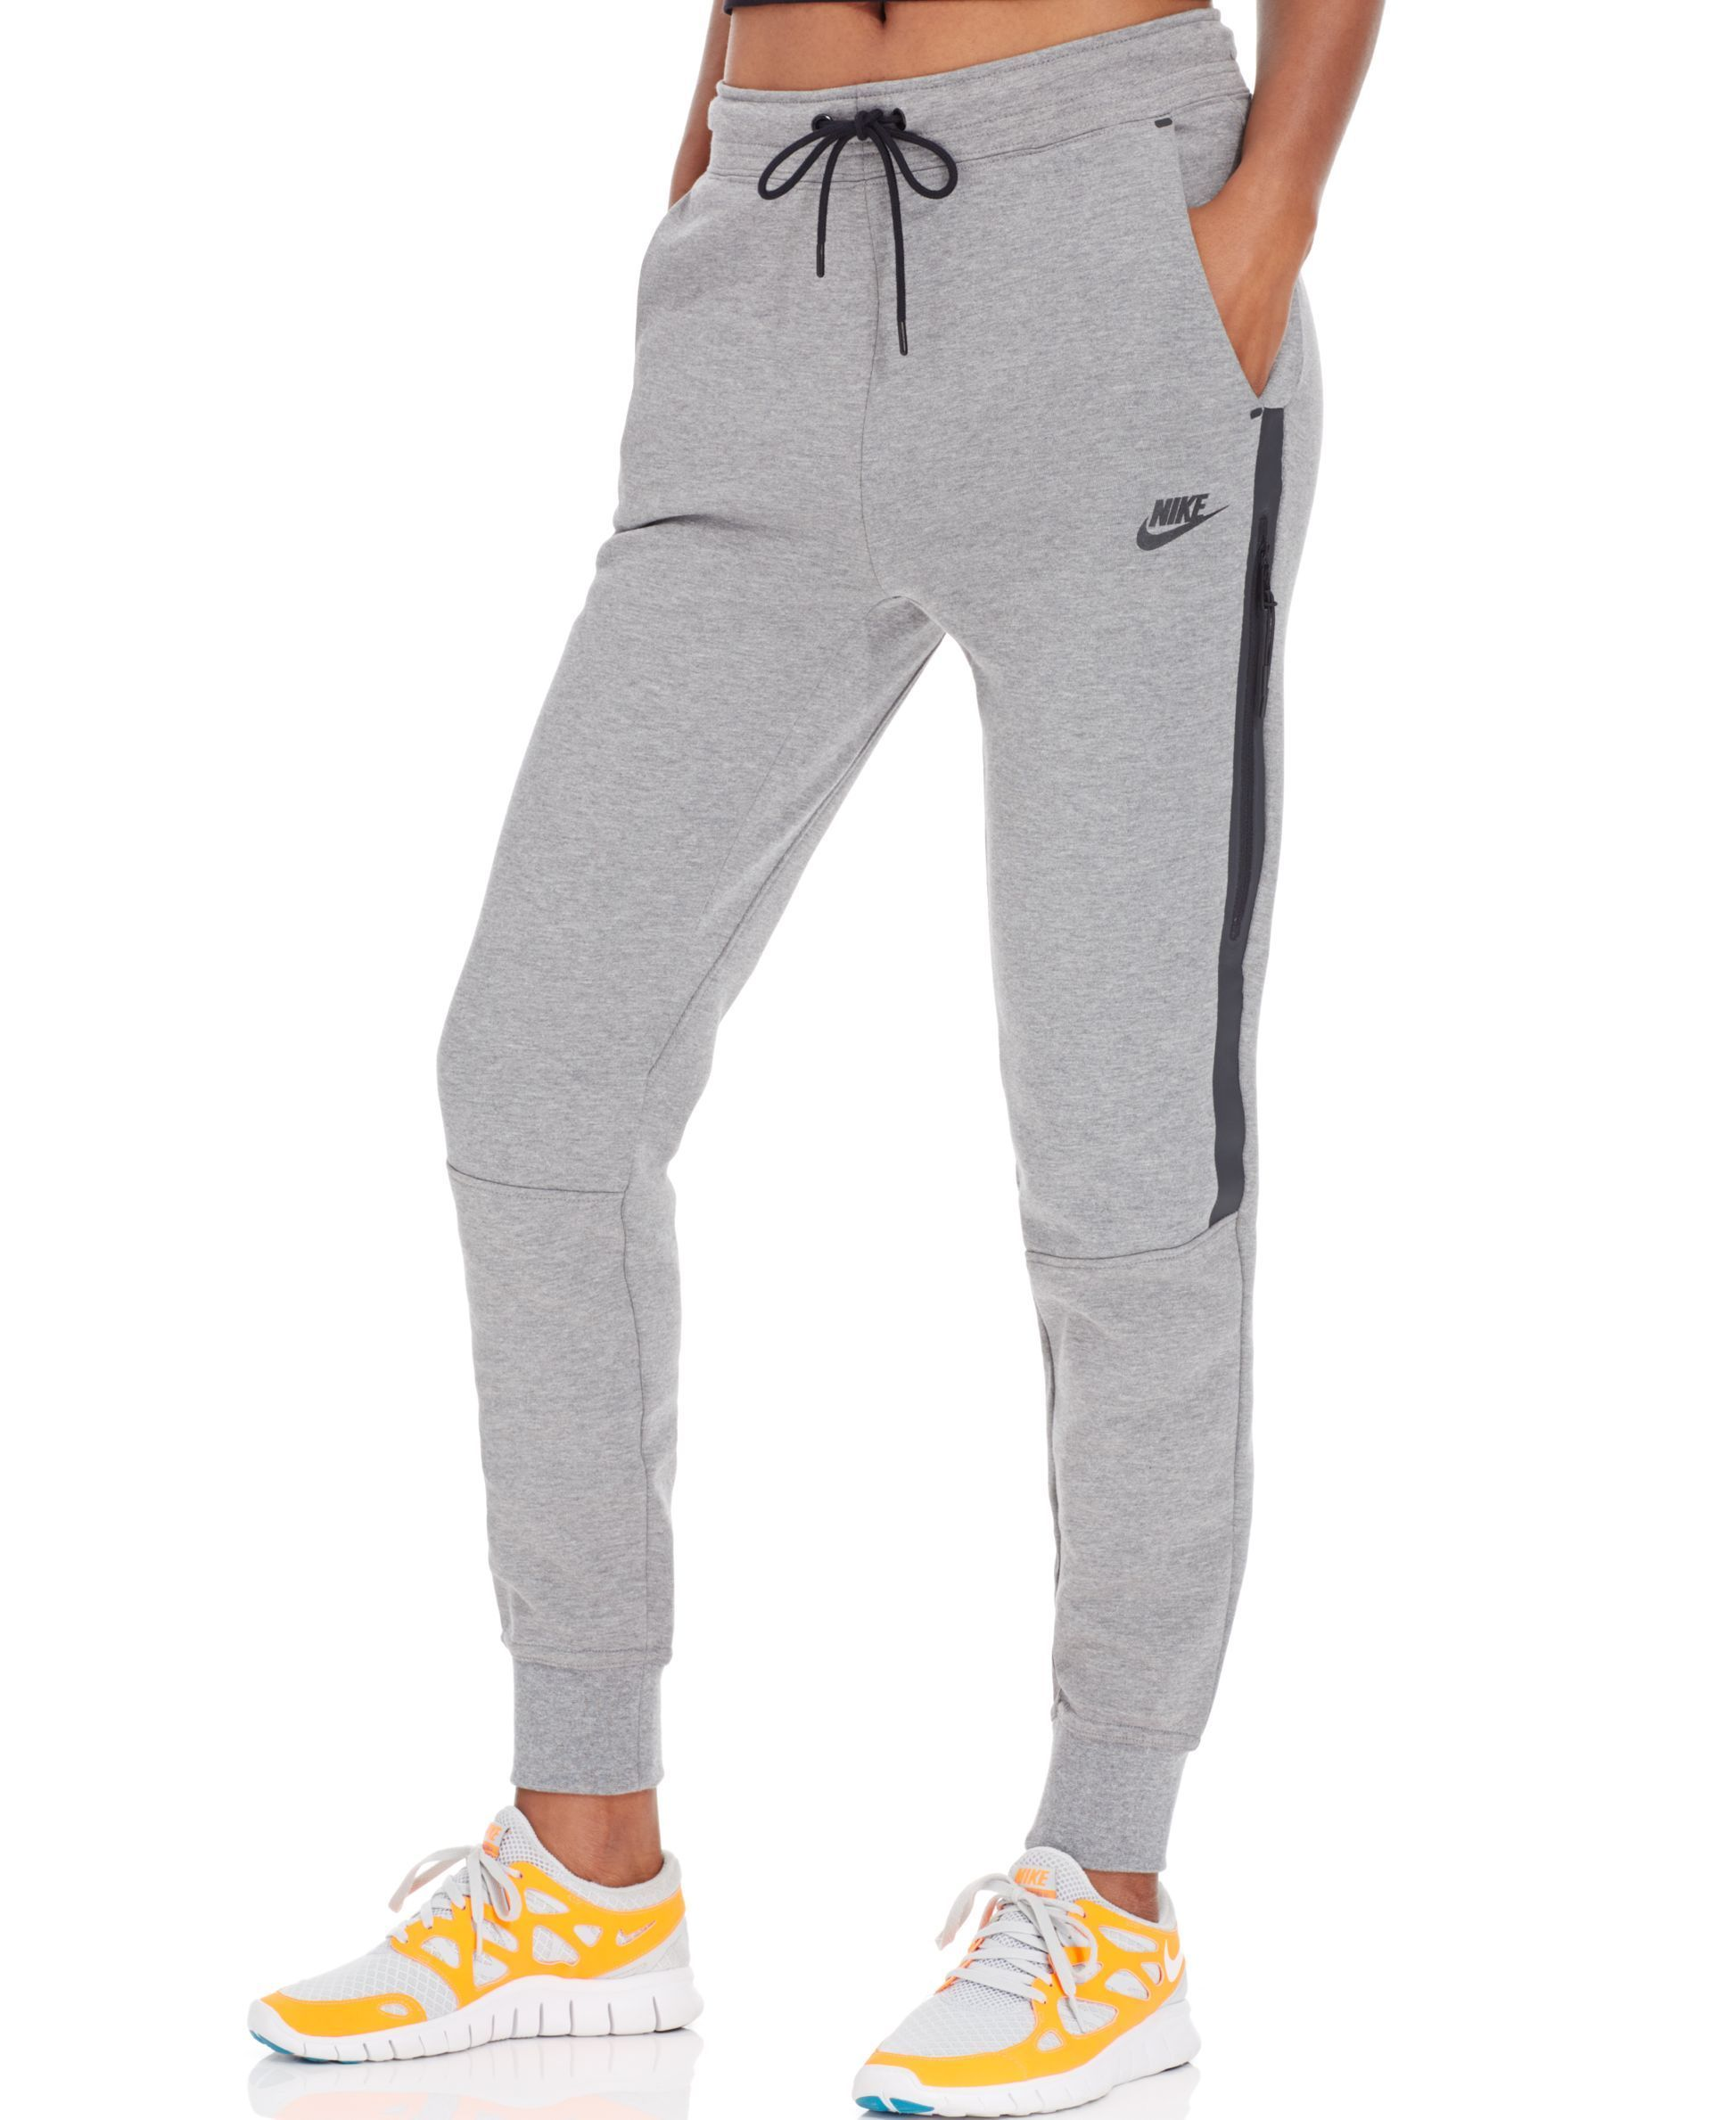 Nike Tech Fleece Sweatpants - Pants - Women - Macy s Pantalones De Chándal c8360a0337b3